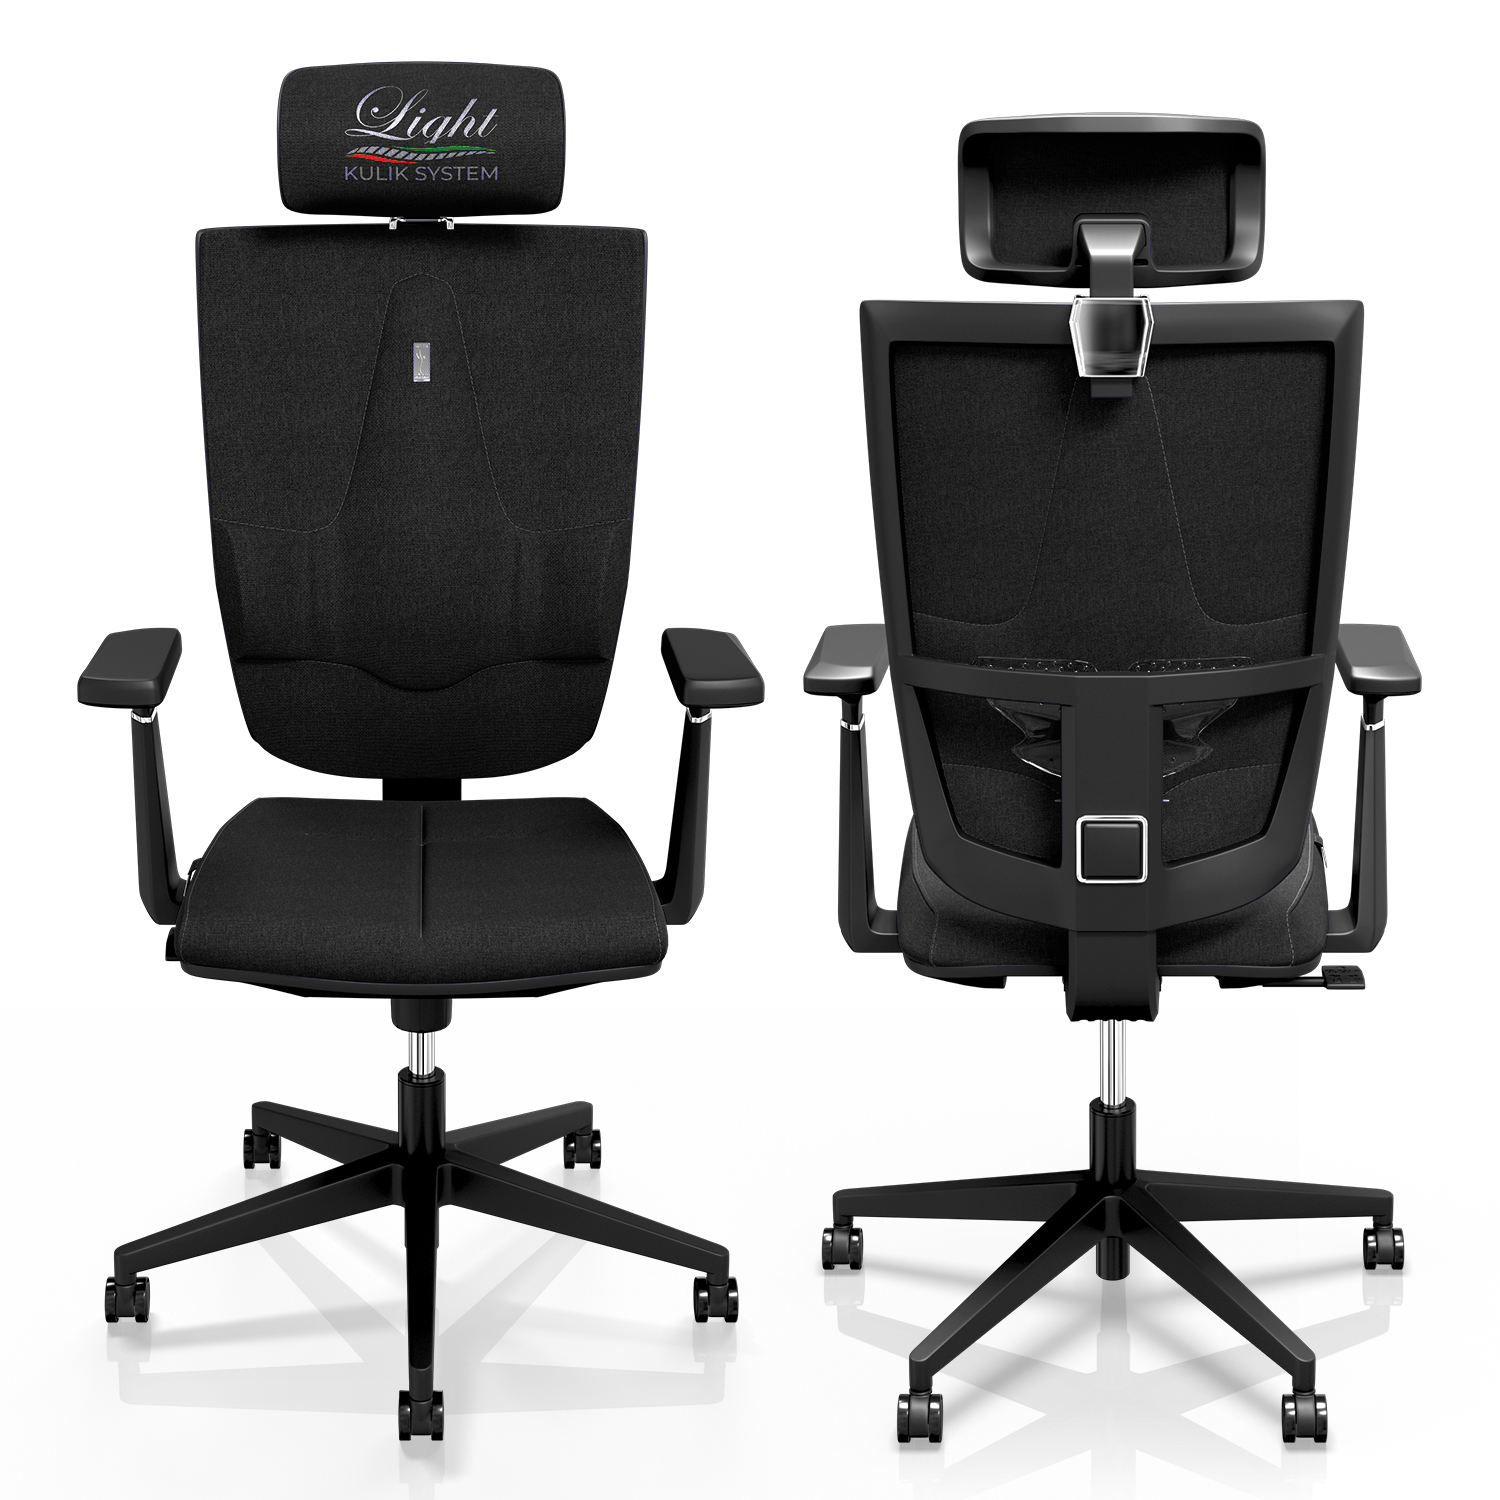 Office Chair KULIK SYSTEM SPACE Extra Black Computer Chair Relief And Comfort For The Back 5 Zones Control Spine